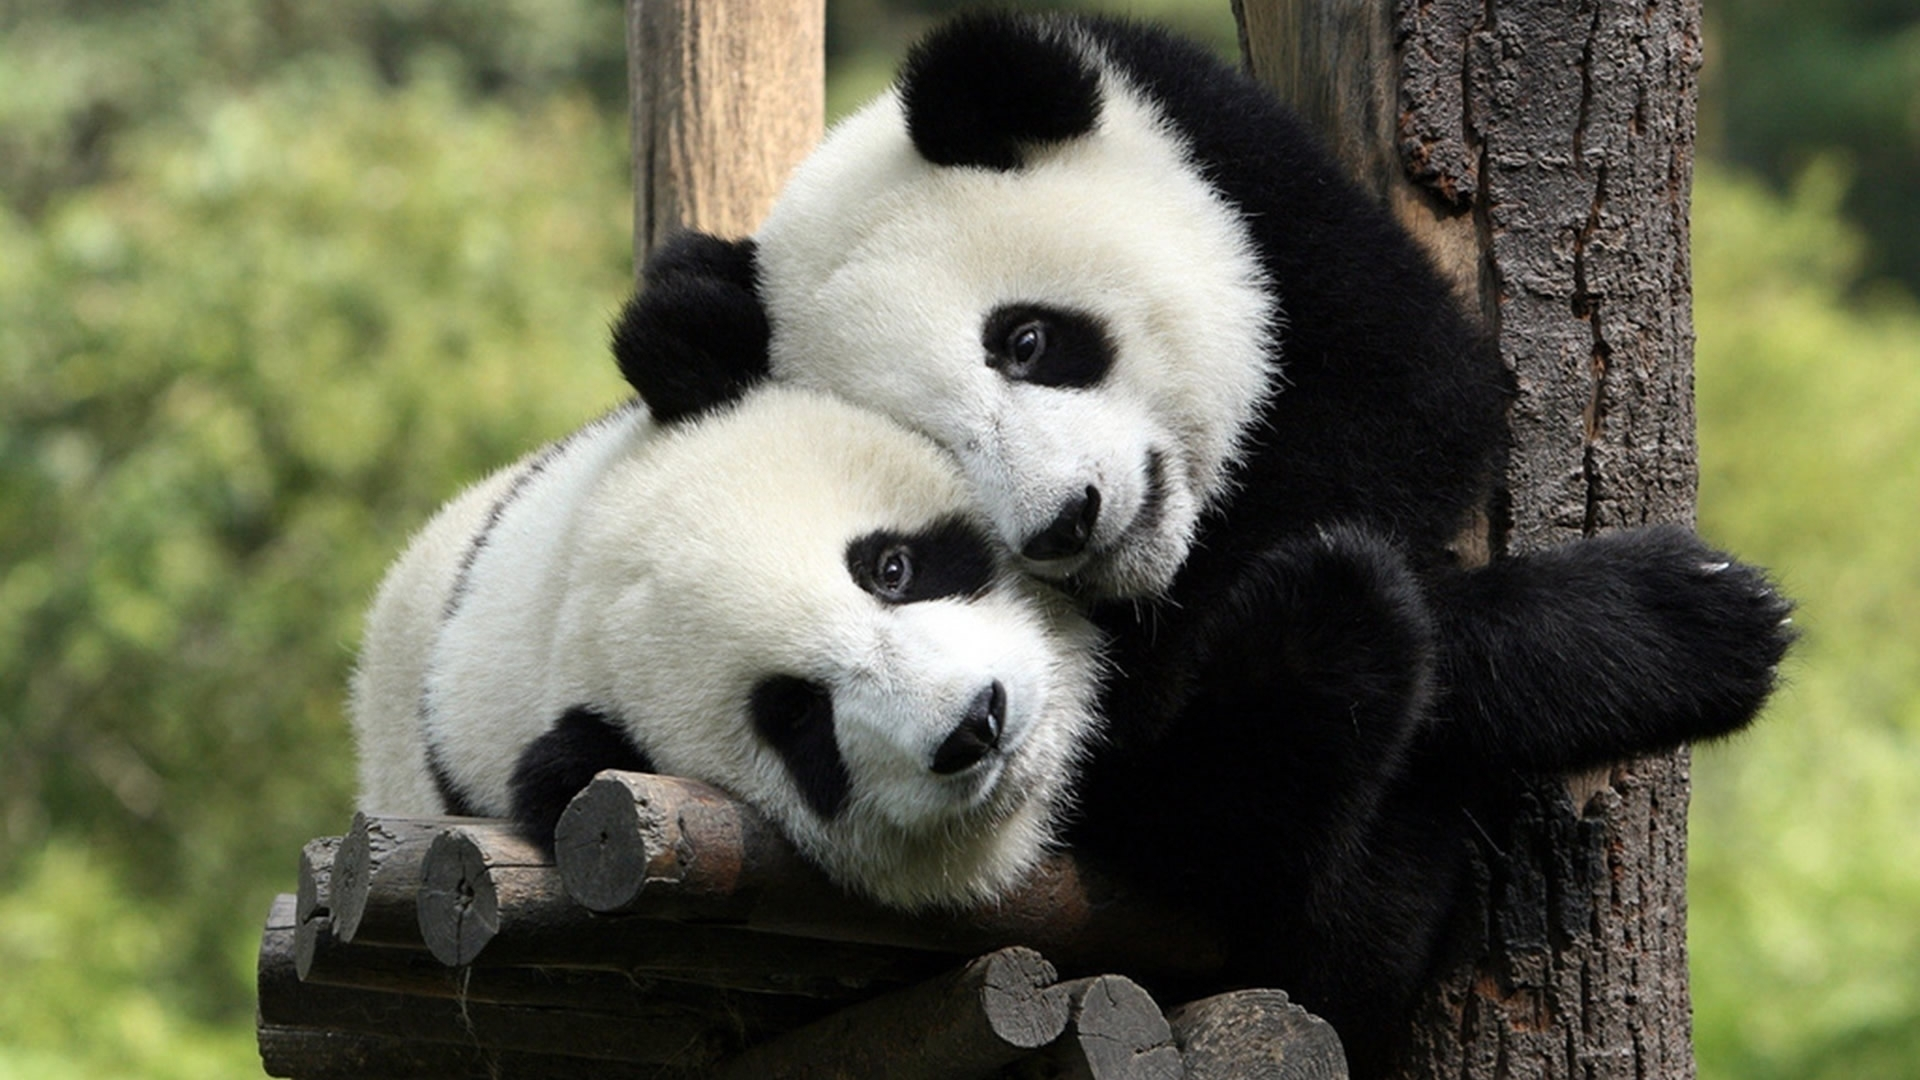 39276 download wallpaper Animals, Pandas screensavers and pictures for free